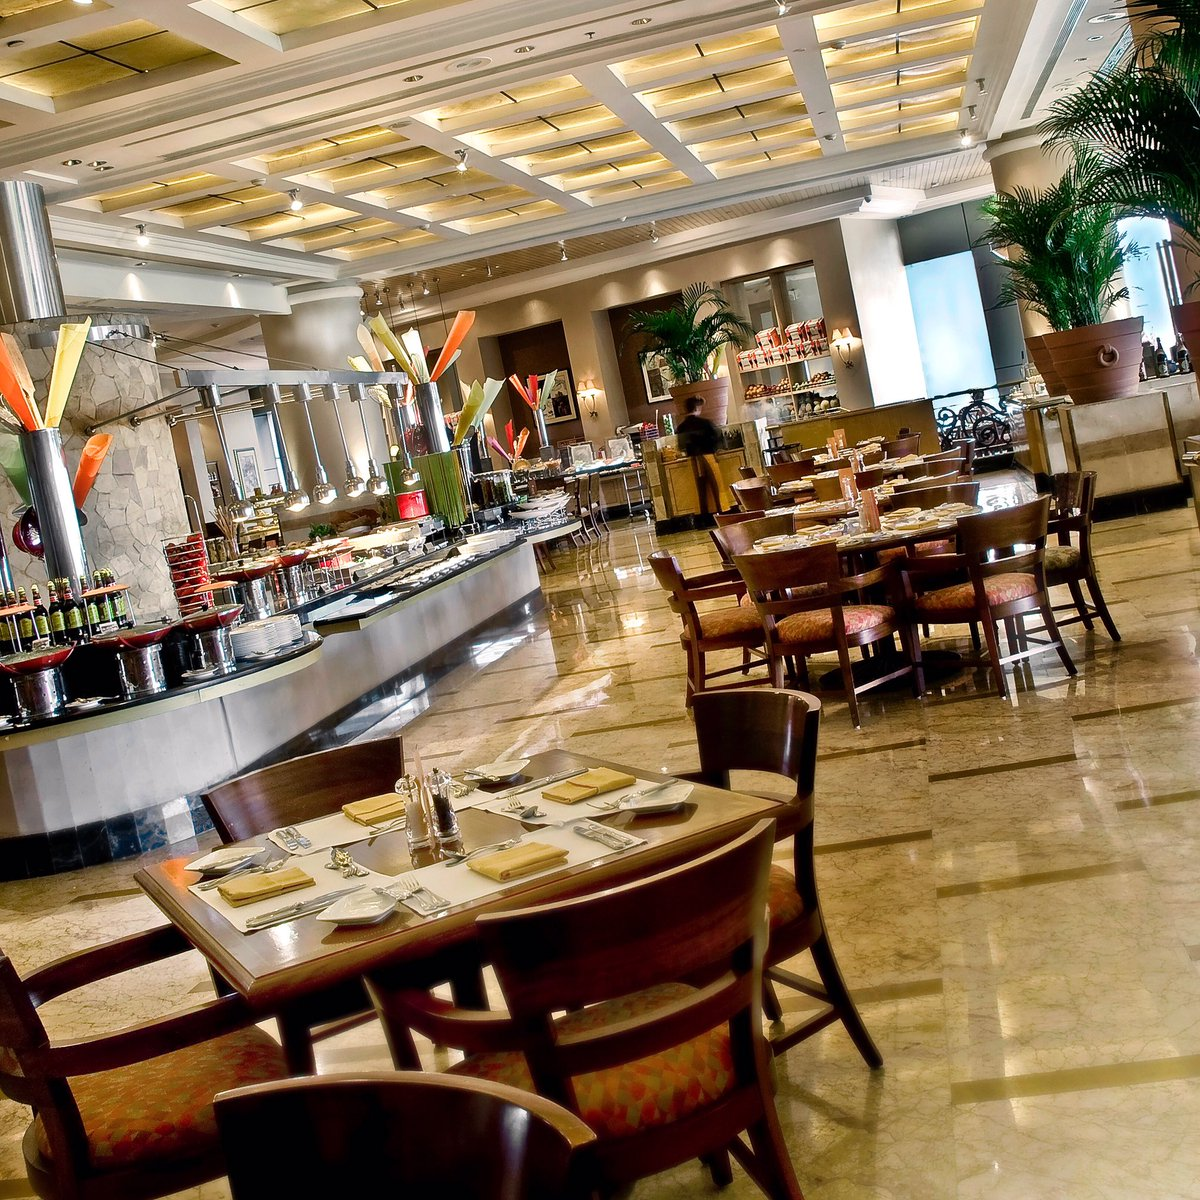 Come and dine in @sailendrarestaurant to savor different delectable cuisines with an inviting atmosphere. #jwmarriottjkt https://t.co/2WudCIQq8a